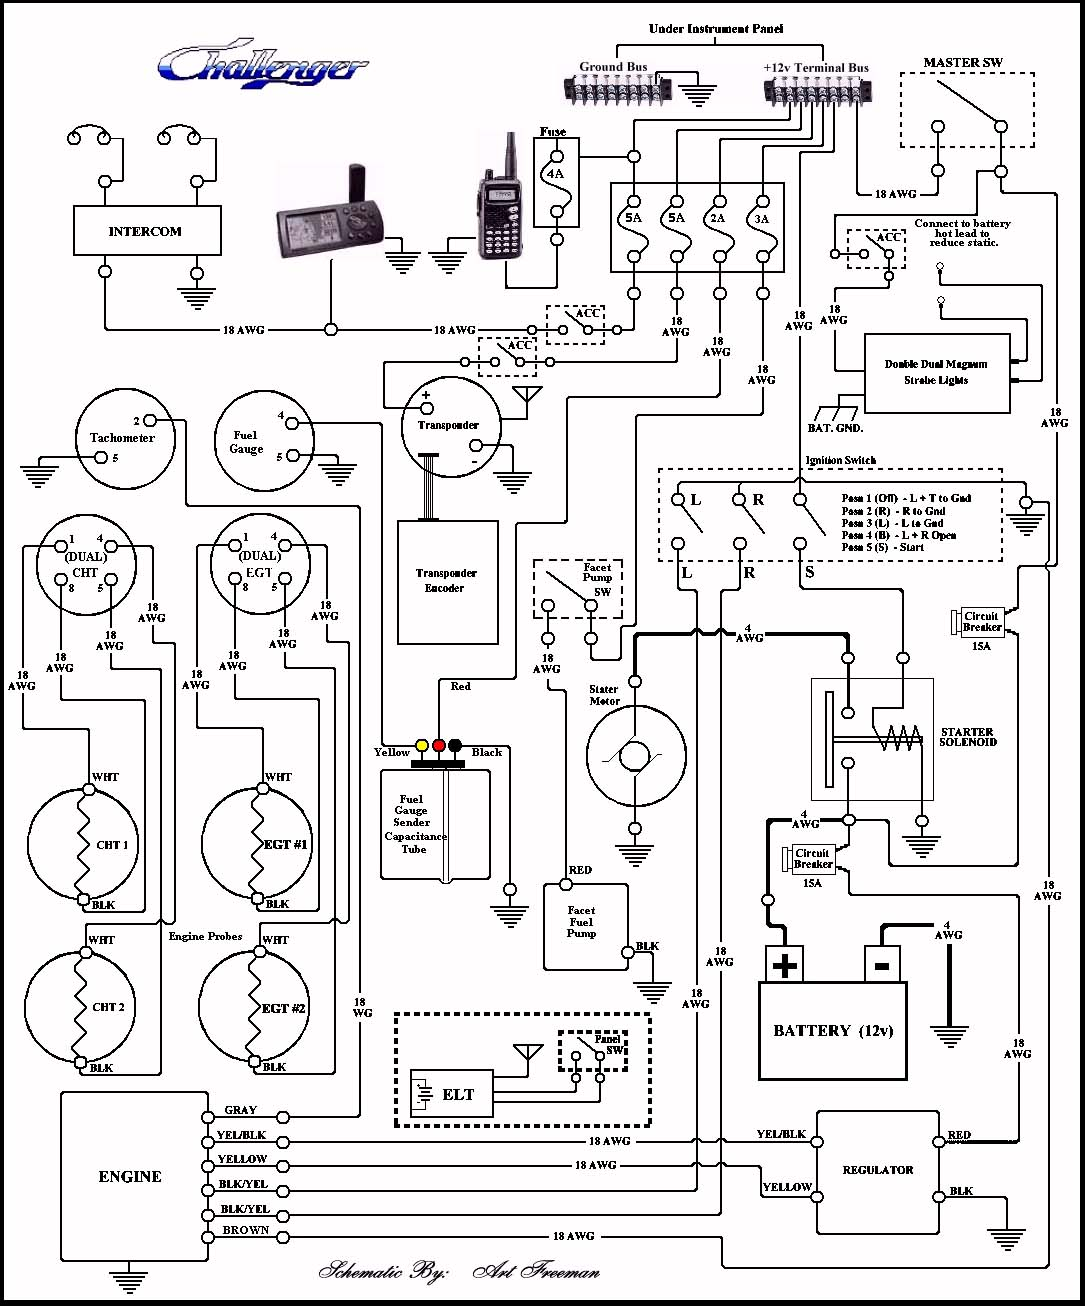 Airplane Wiring Schematic Diagram Data Model Engine Aircraft Electrical Symbols Hydraulic System Diagrams Change Your